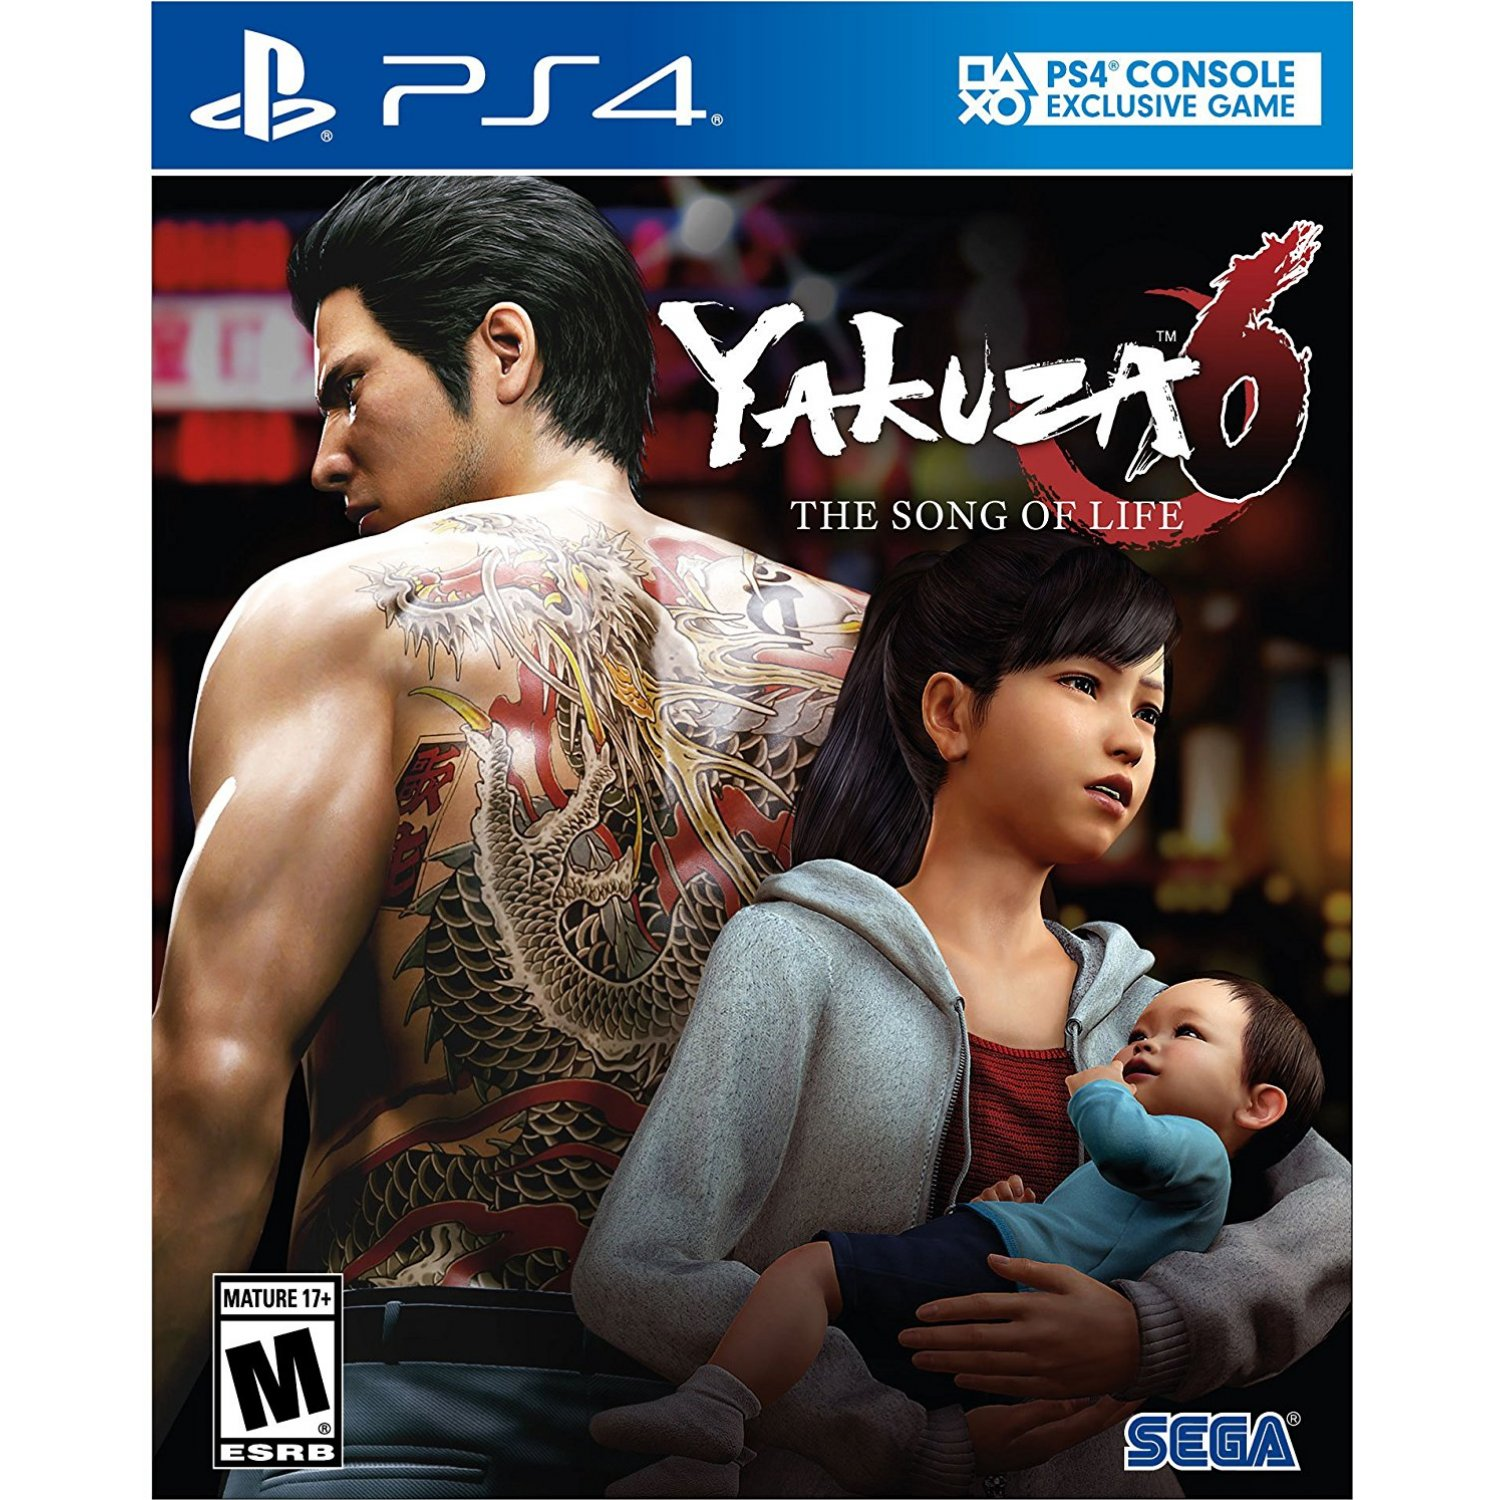 PS4: Yakuza 6 The Song of Life (R3)